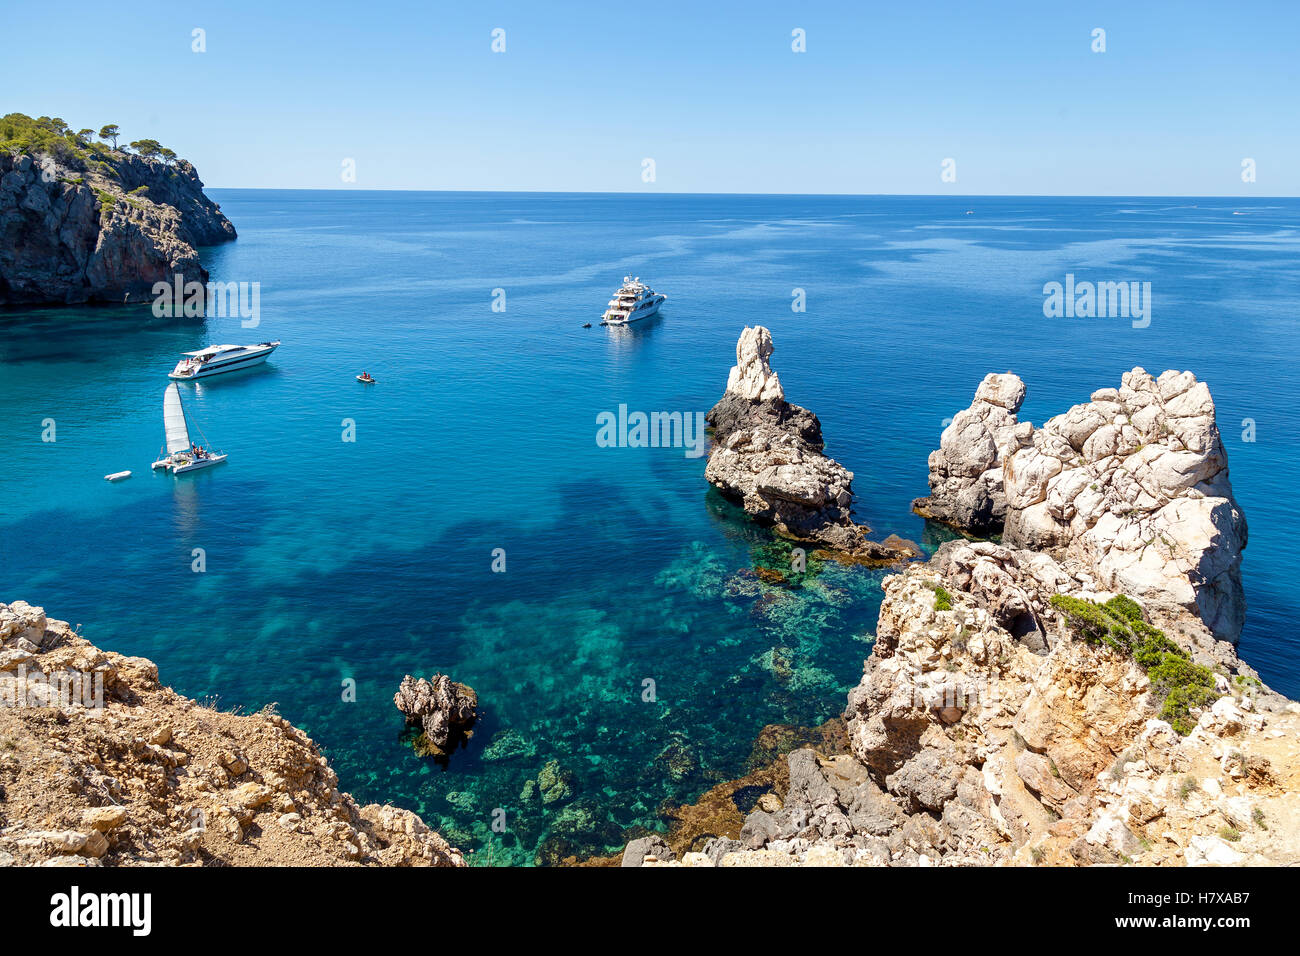 Azure bay with crystal clear water, which offers incredible views of the vast expanses. Lonely sailer rock on the - Stock Image